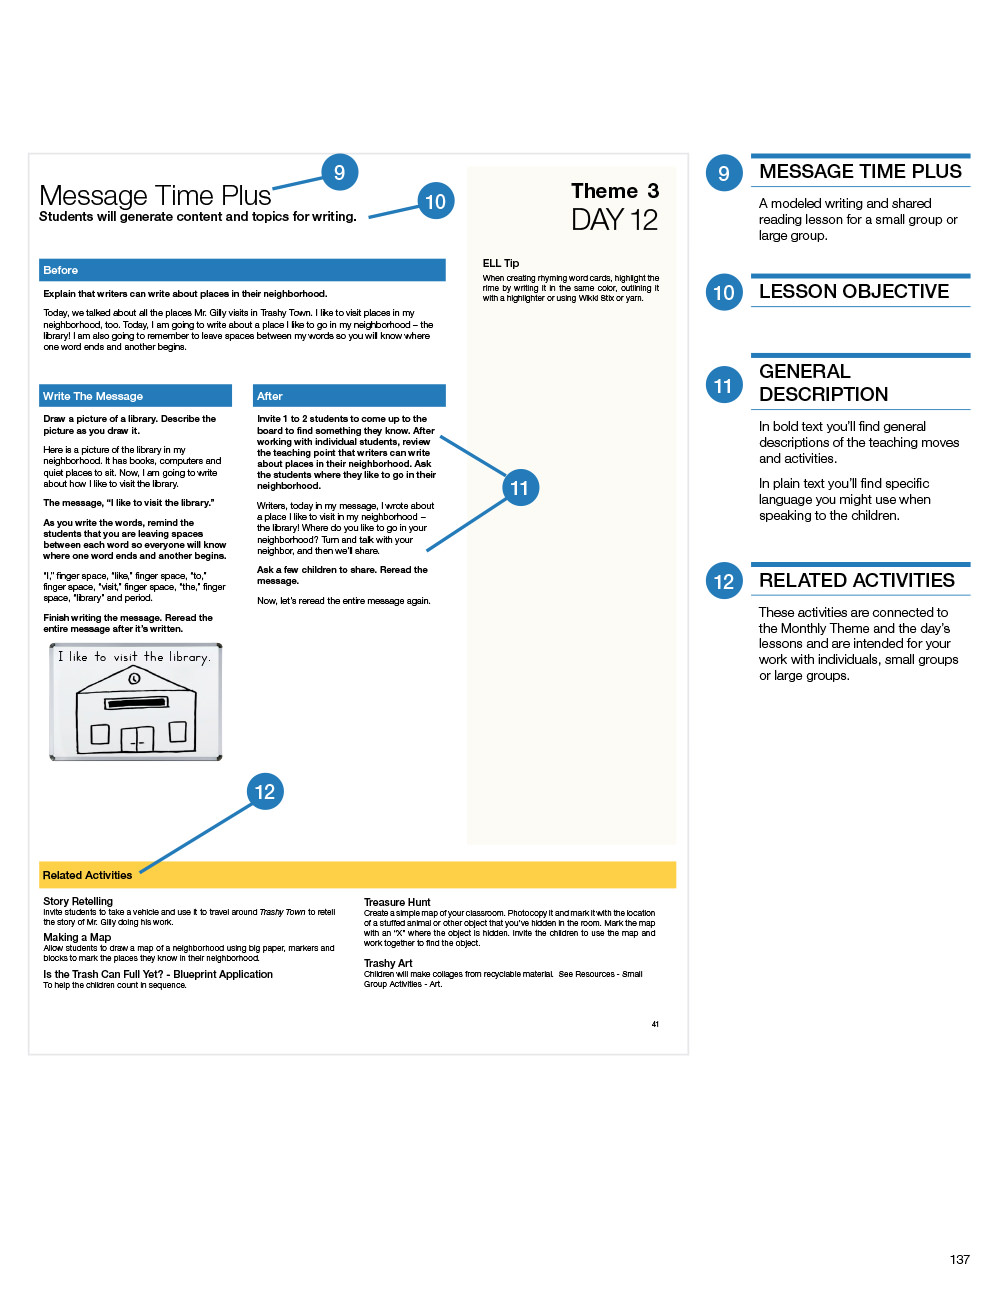 MTP Page Layout